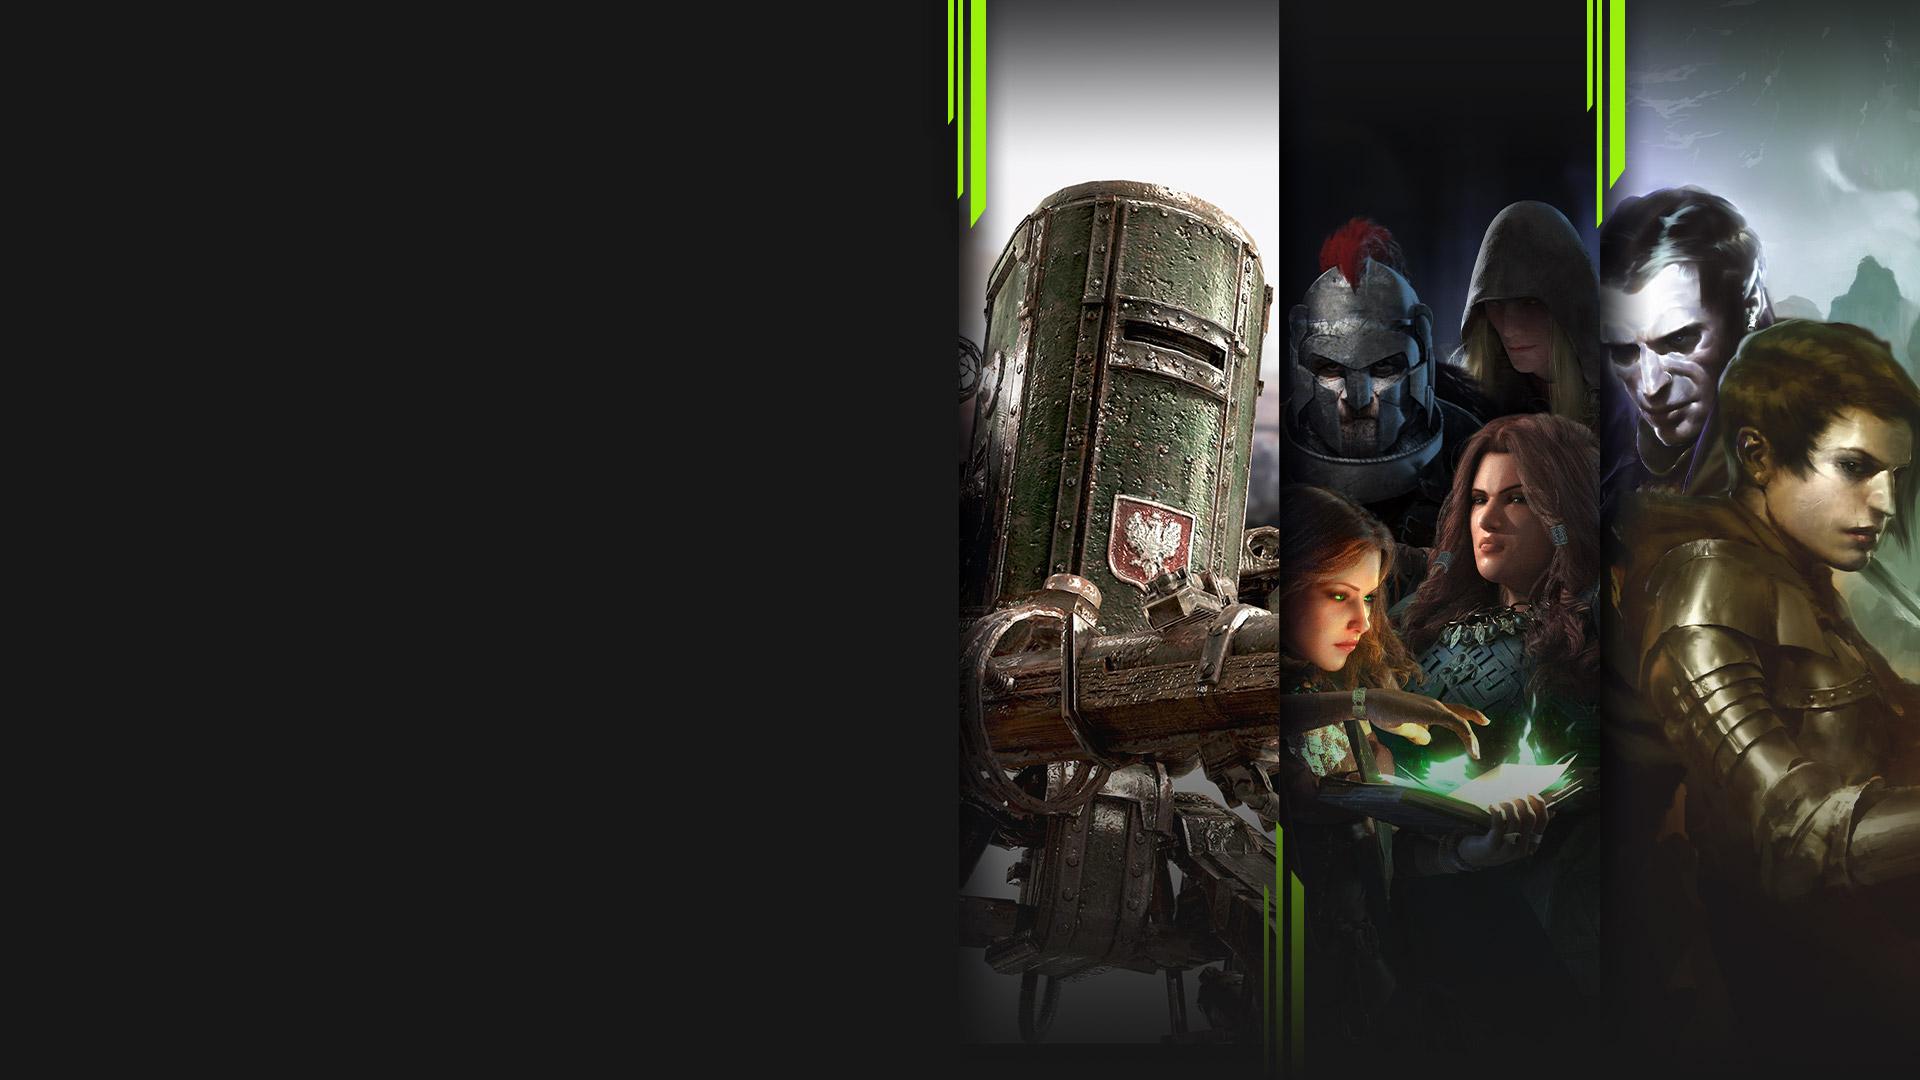 Game art from multiple Xbox Game Pass games available on PC including Iron Harvest, Solasta: Crown of the Magister, SpellForce 3: Soul Harvest, and Backbone.